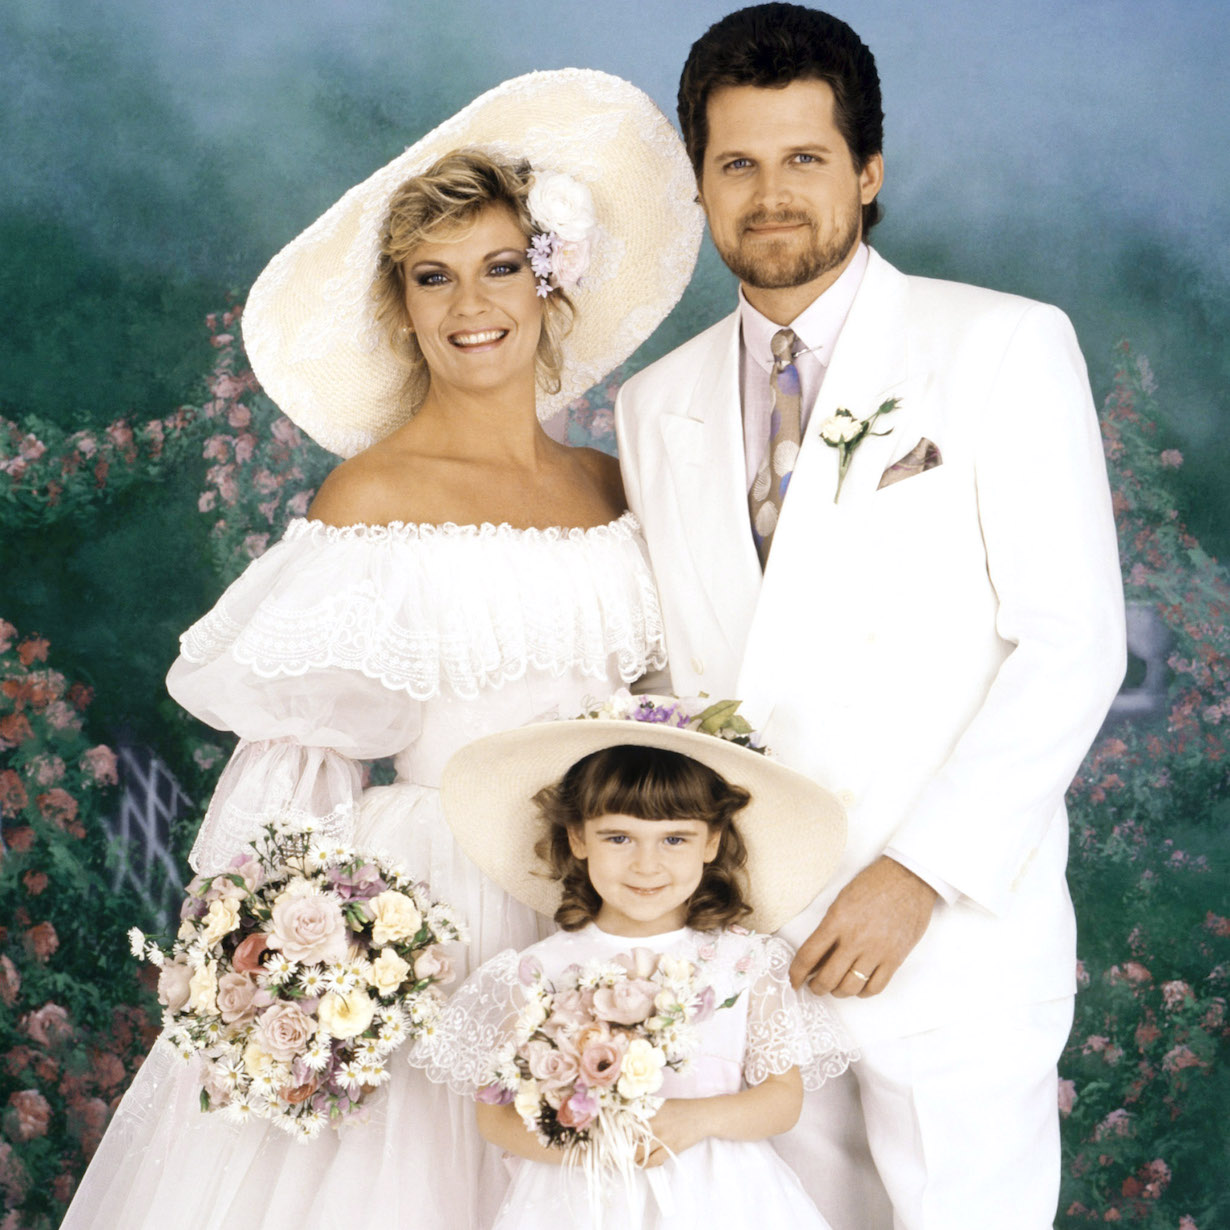 THE GUIDING LIGHT, josh reva wedding (from left): Kim Zimmer, Ashley Peldon, Robert Newman, (ca. July 14, 1989), 1952-2009. © CBS / Courtesy: Everett Collection